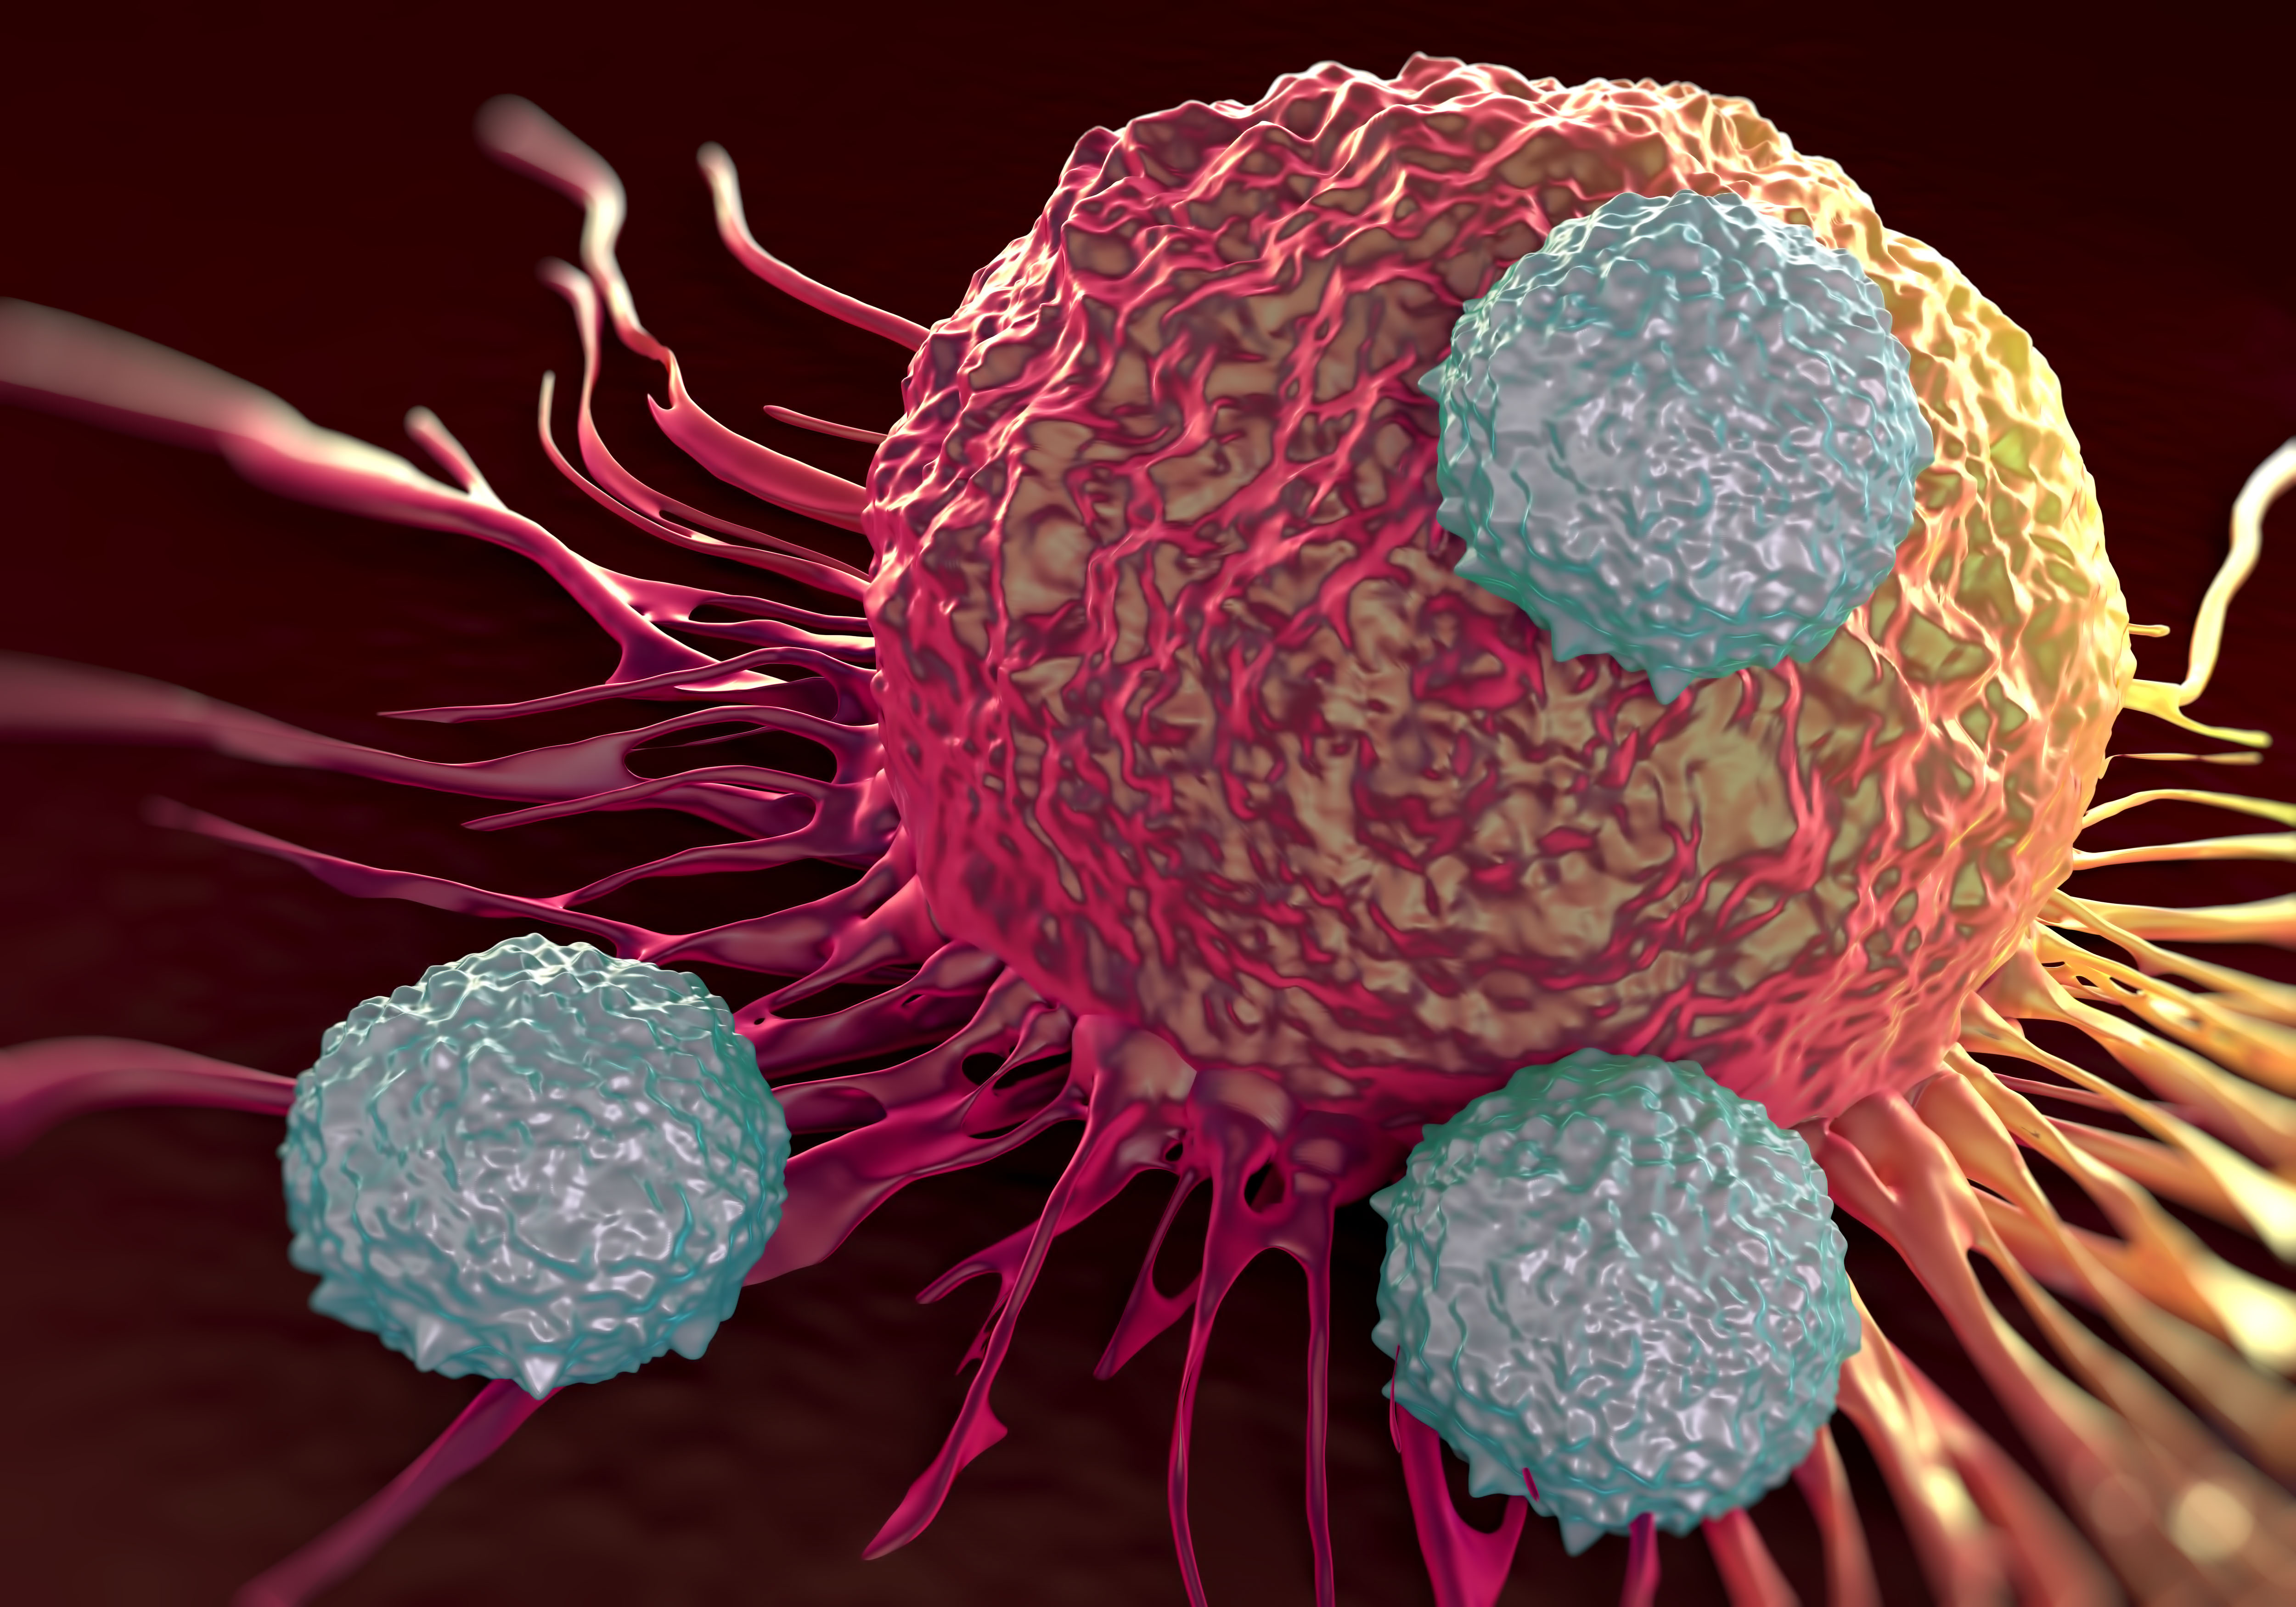 T-cells attacking cancer cell  illustration of  microscopic photos.